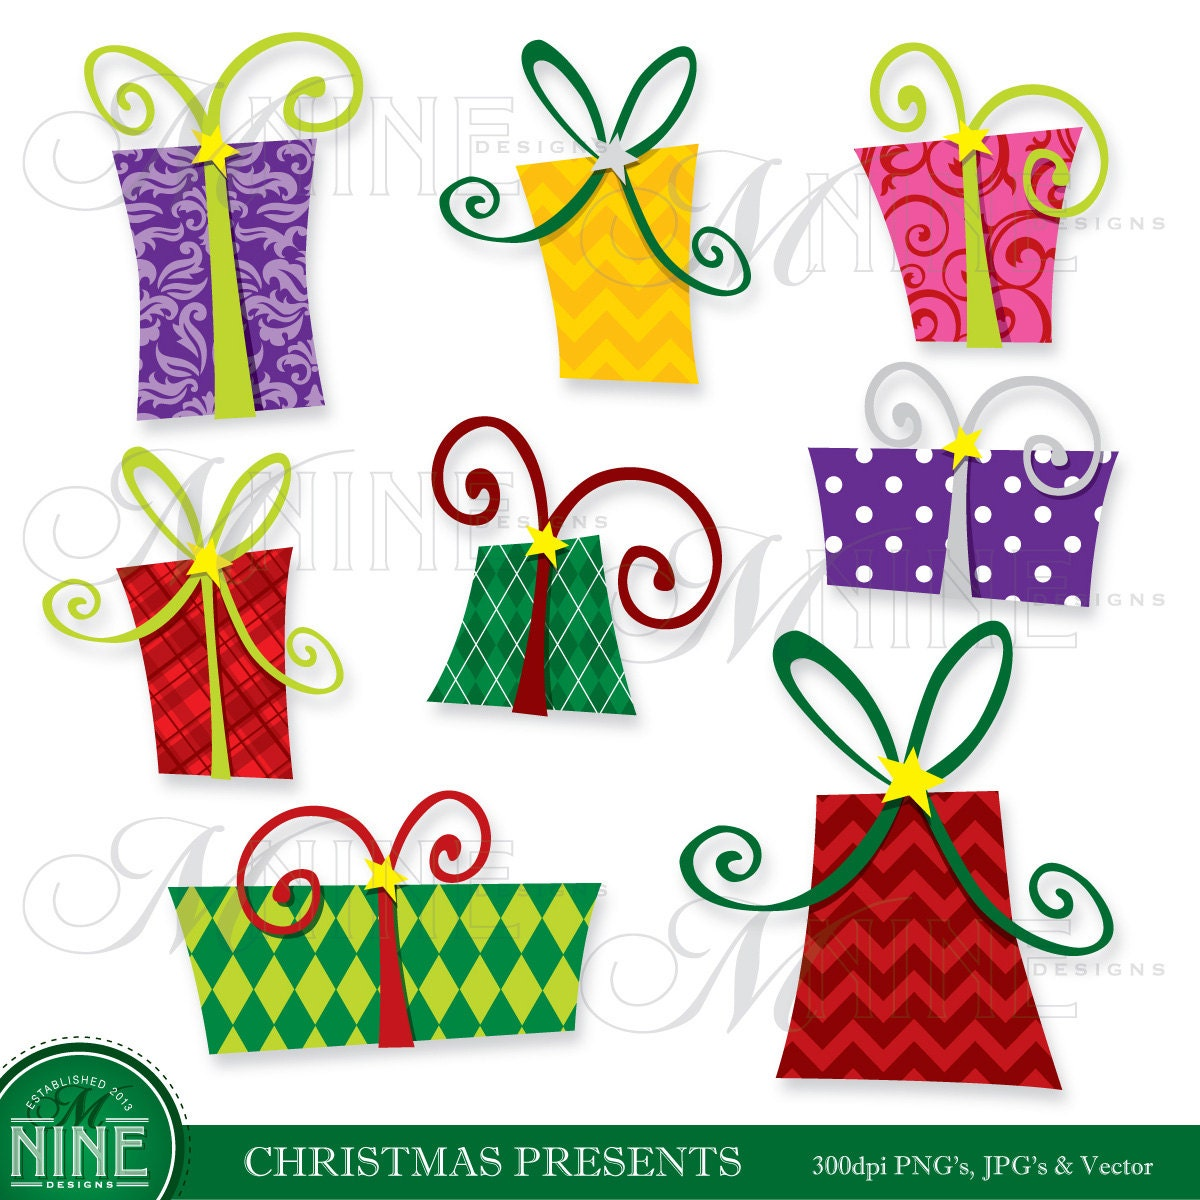 Presents clipart | Etsy